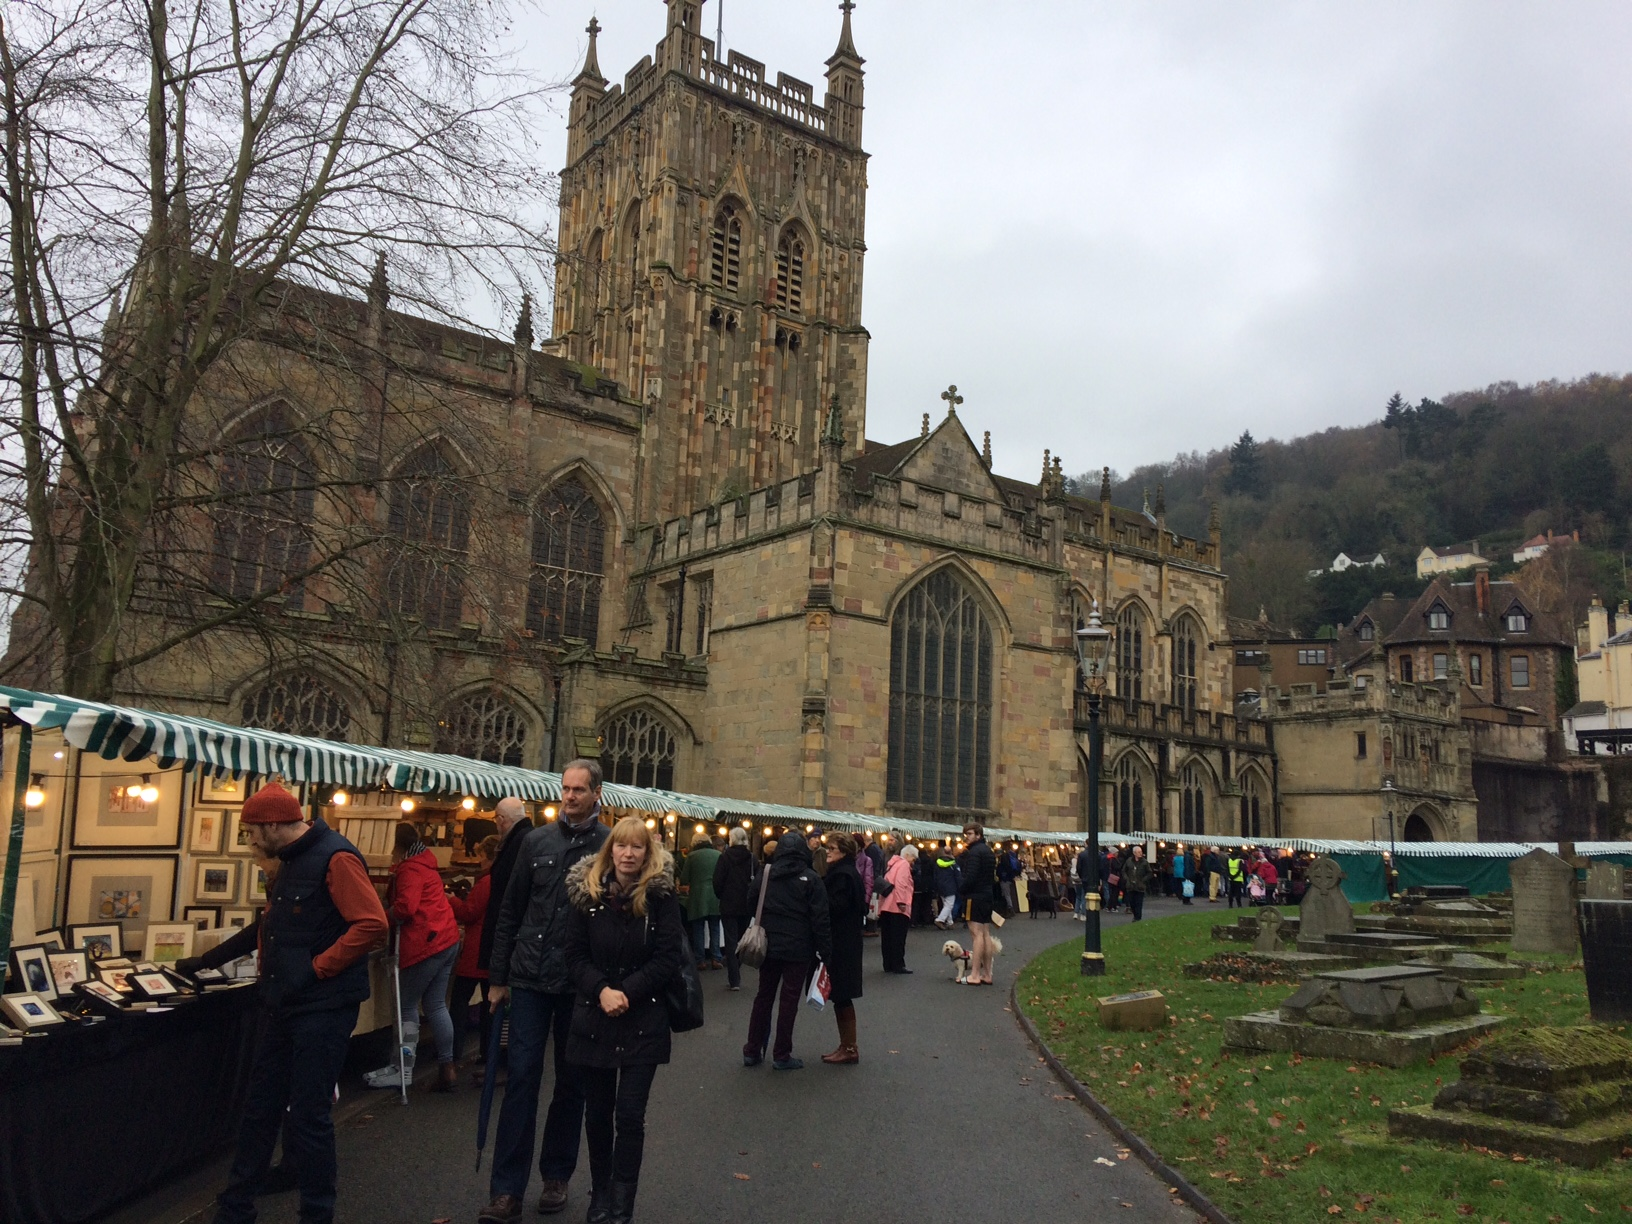 Malvern Arts and Food Market